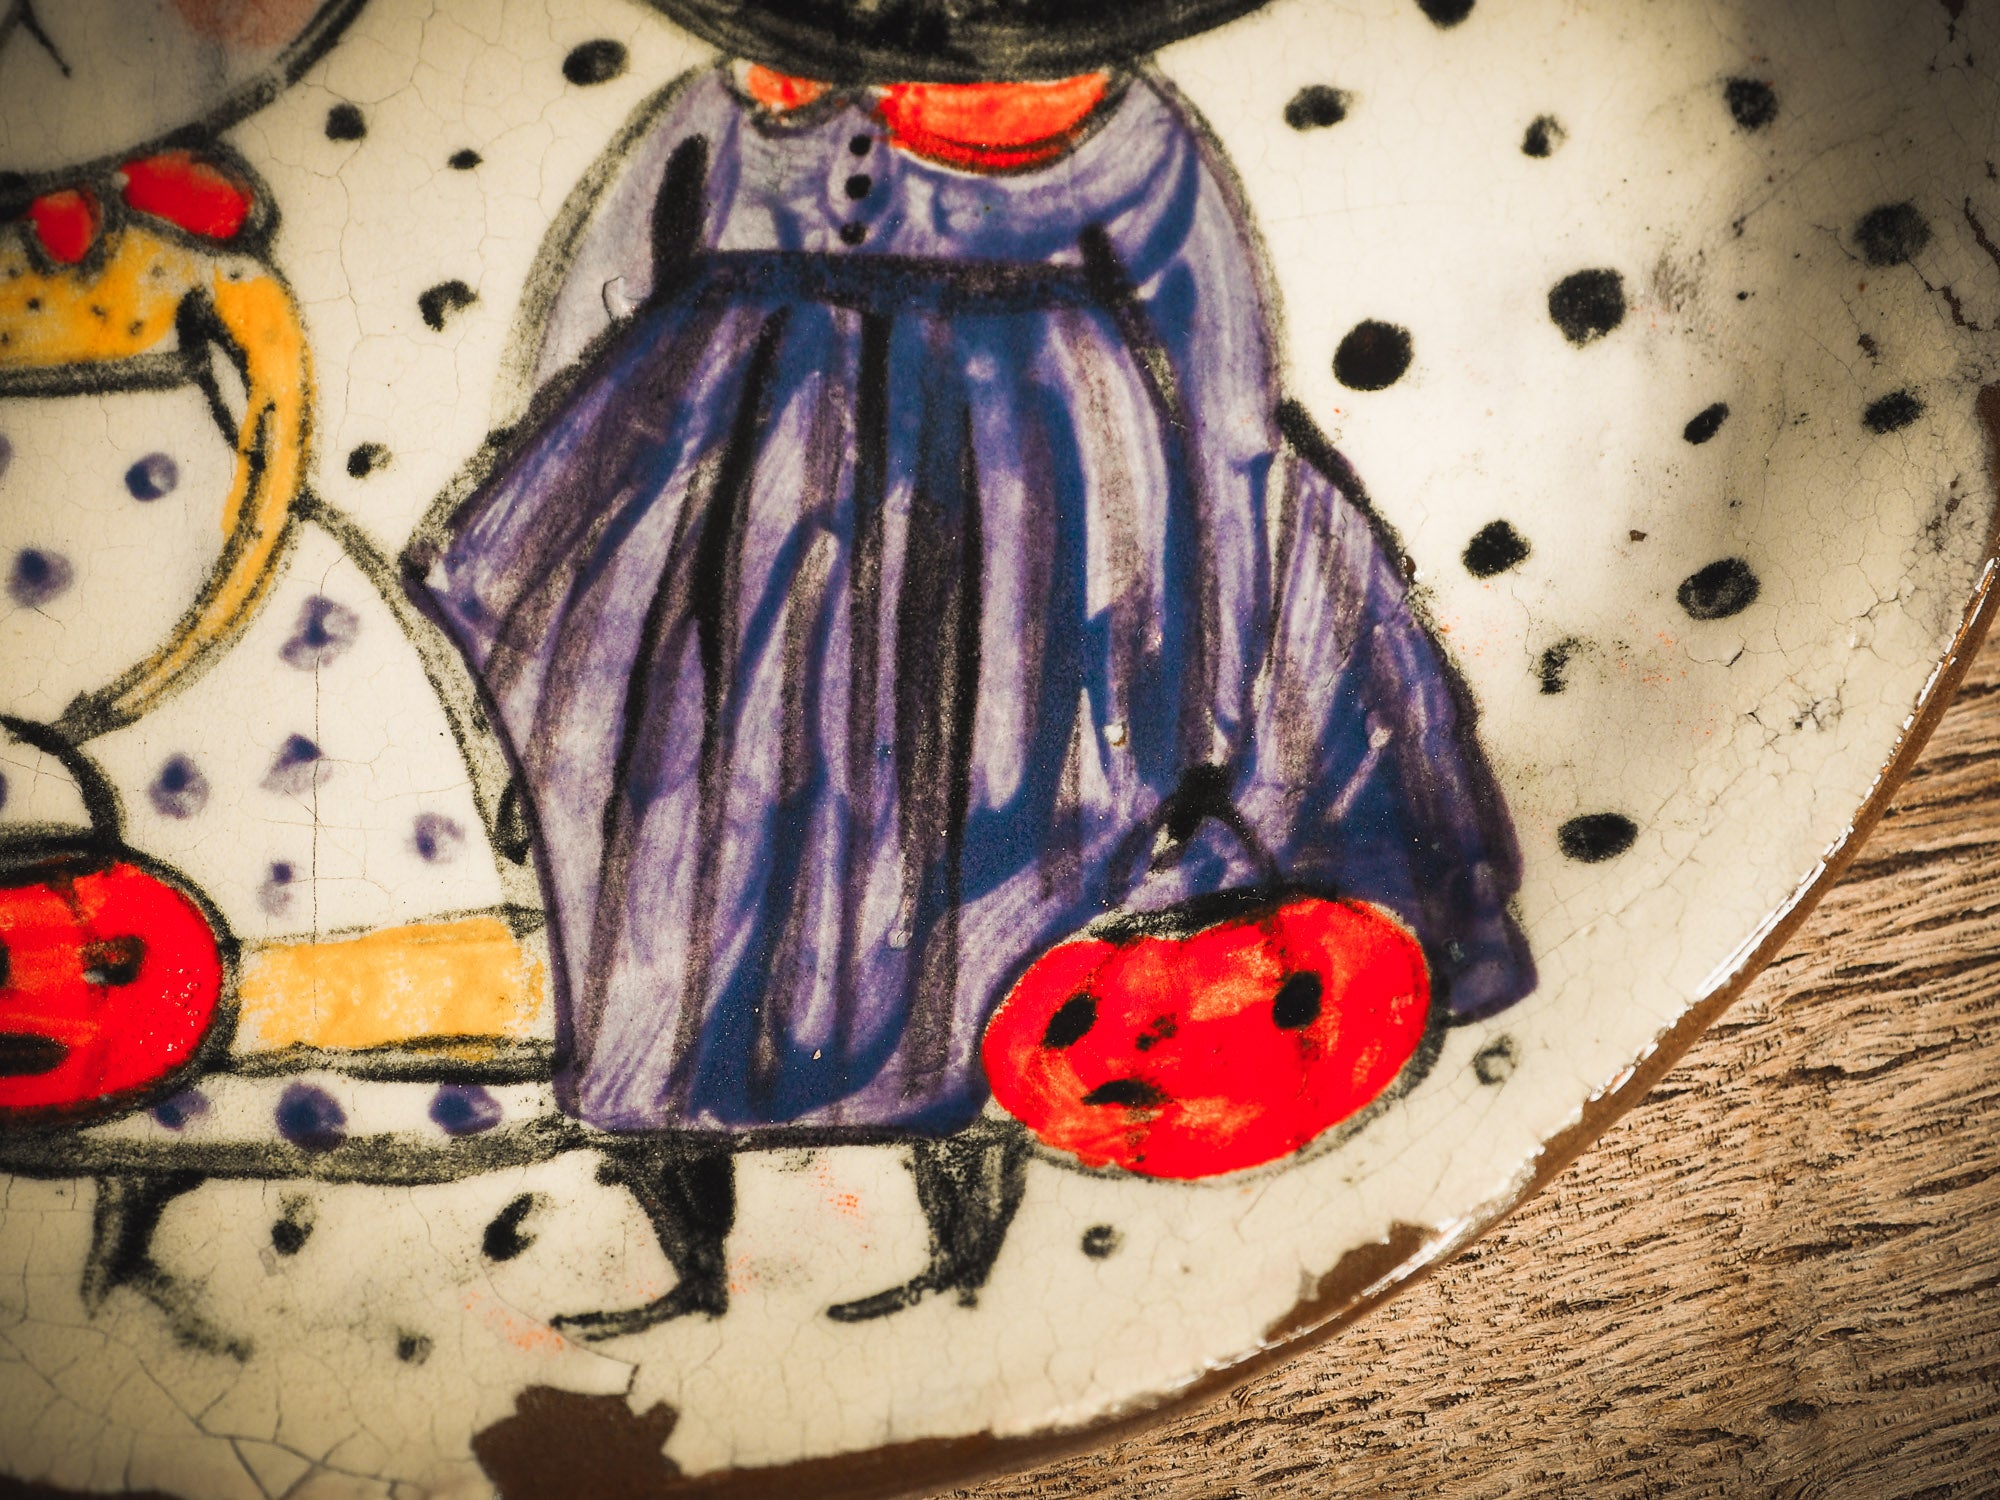 An original handmade Halloween ceramic dinner plate by Idania Salcido, Danita Art. Each plate is hand painted and glazed with pumpkins, witches, cats, jack-o-lanterns and moons. Made with fired glazed ceramics, this little witch, jack-o-lantern and cat plate is painted with delicate patterns that make it one of a kind artwork.